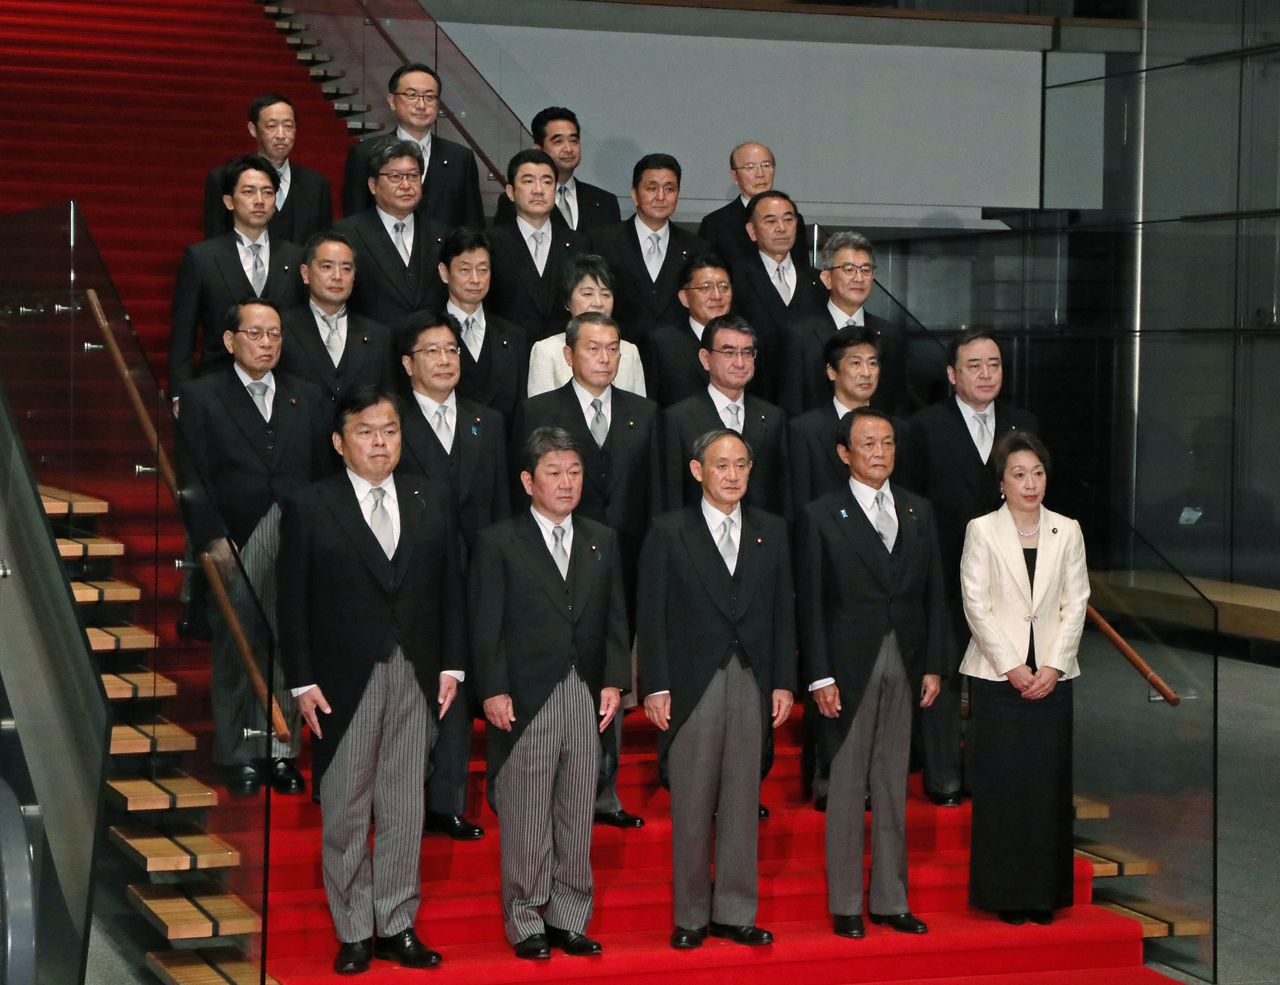 Prime Minister Suga Yoshihide, at front center, poses with his new cabinet on September  16 at the Kantei. (© Jiji)